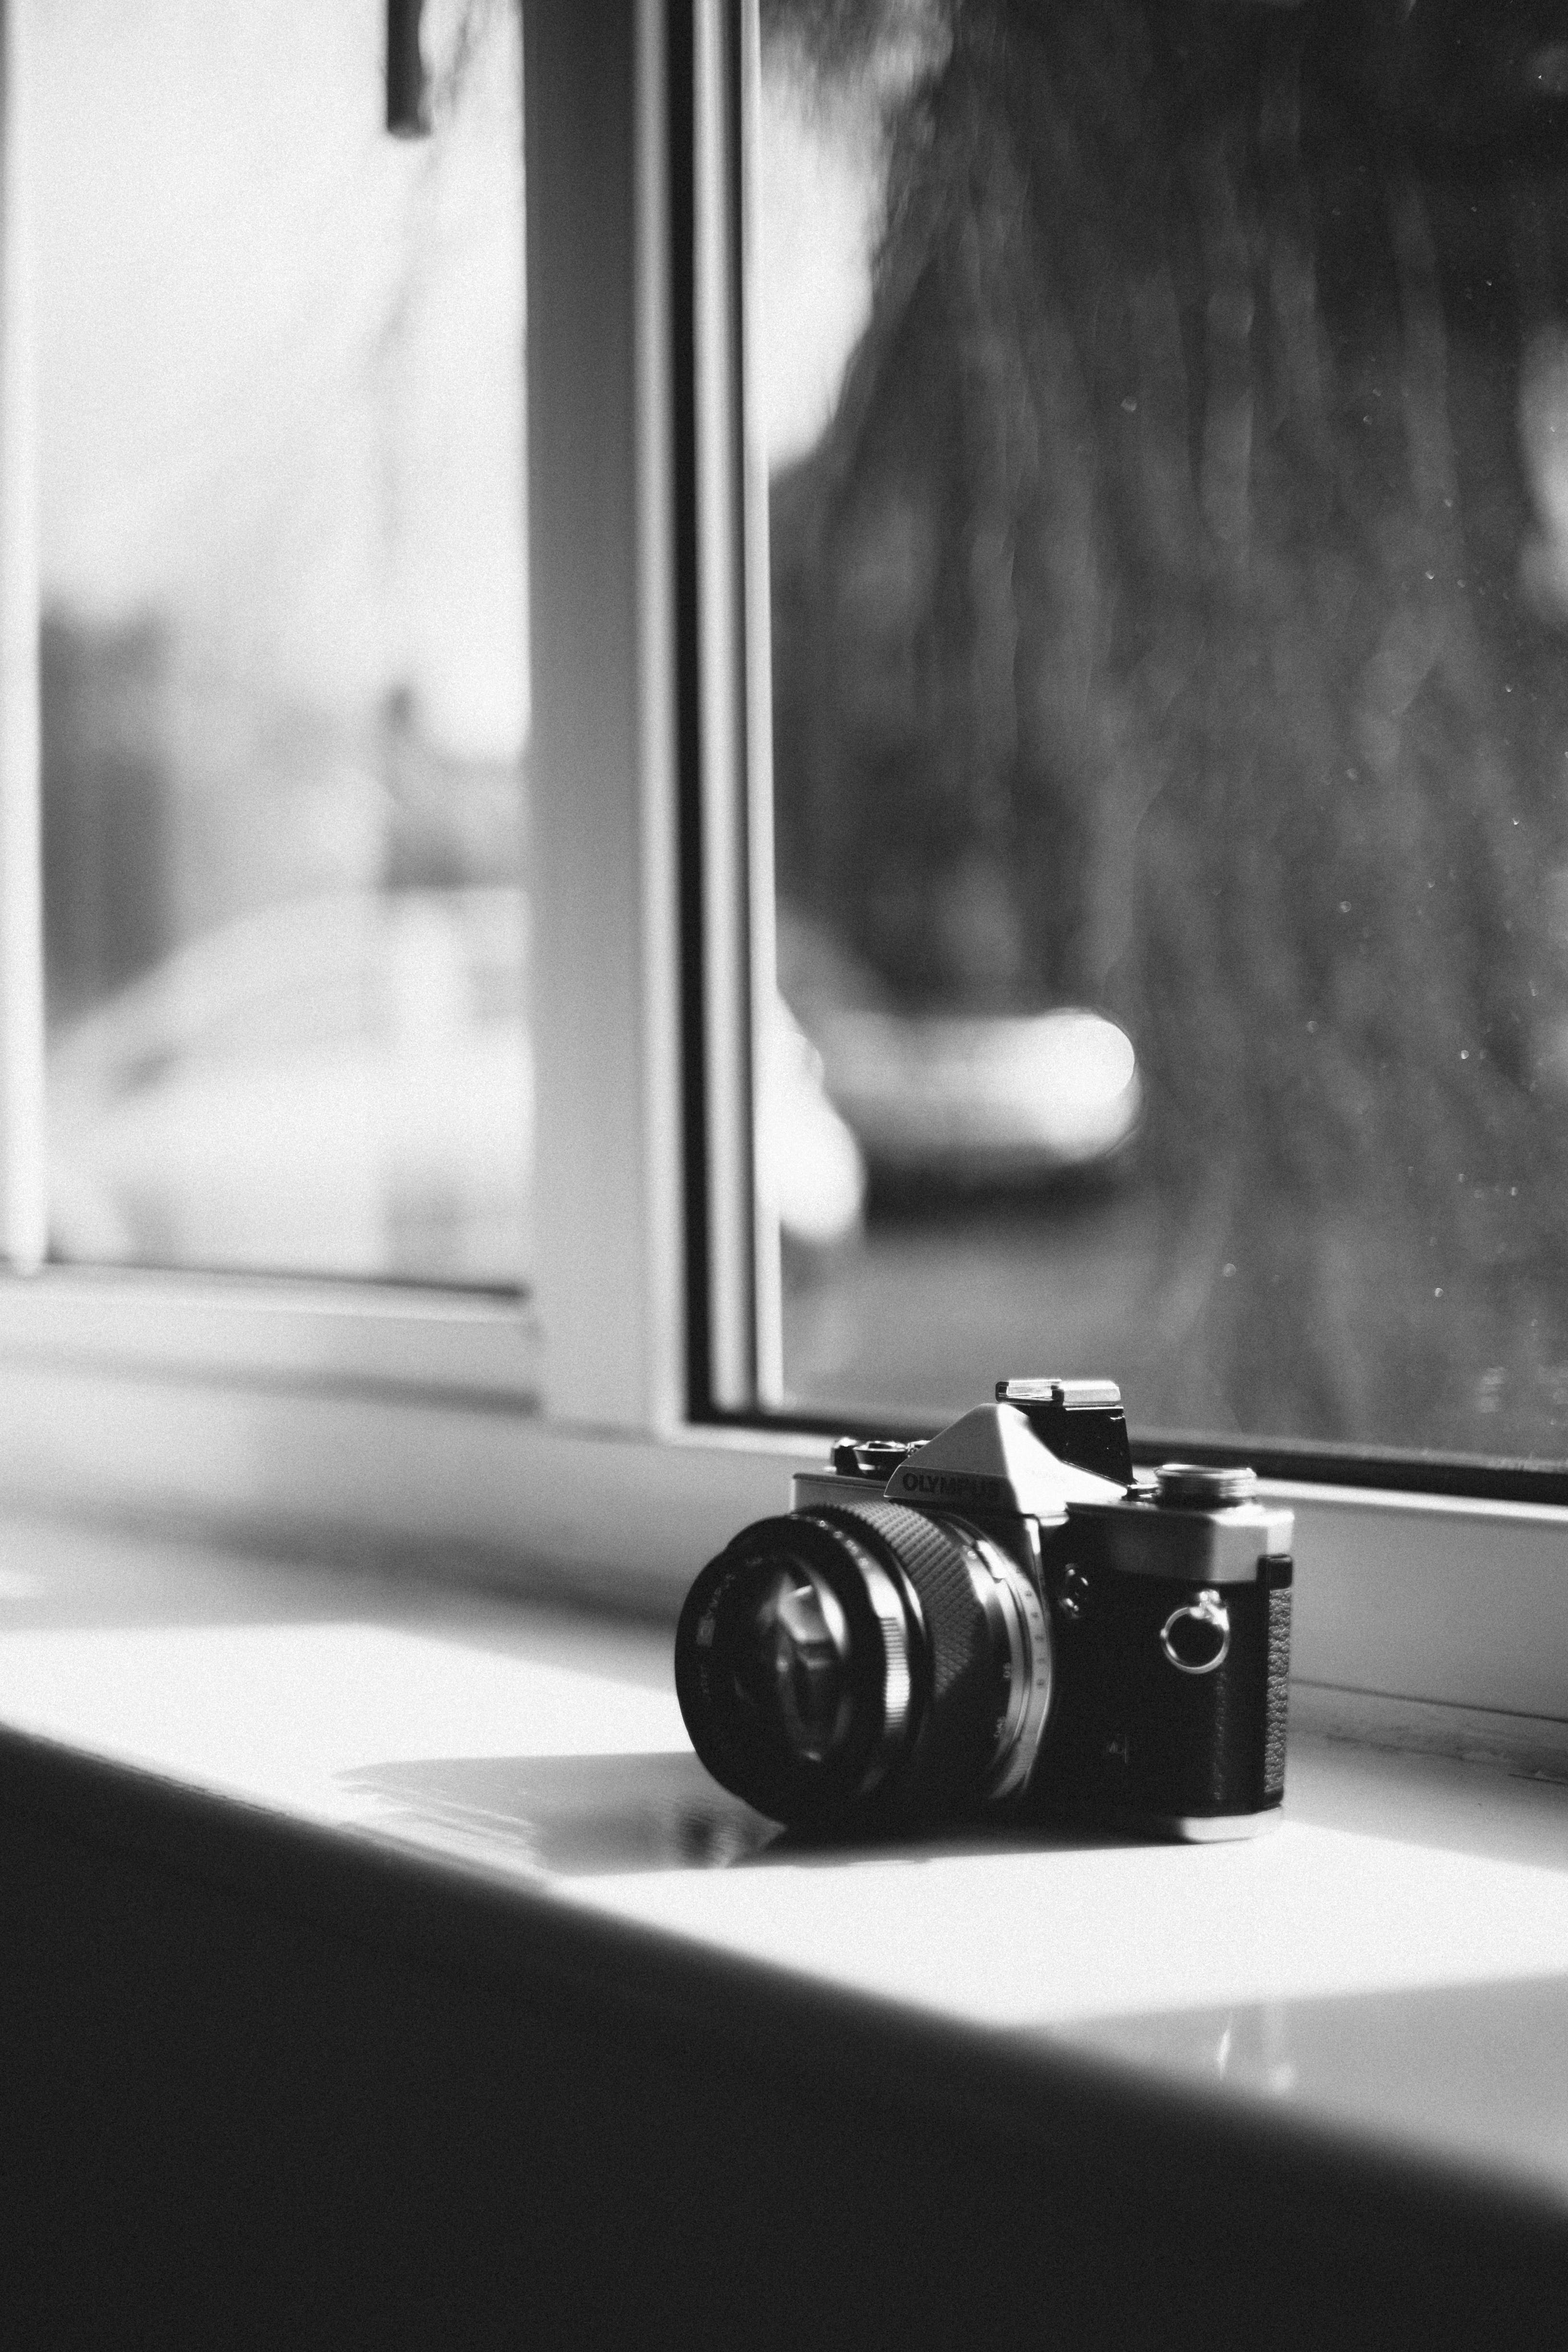 Grayscale Photography of Dslr Camera